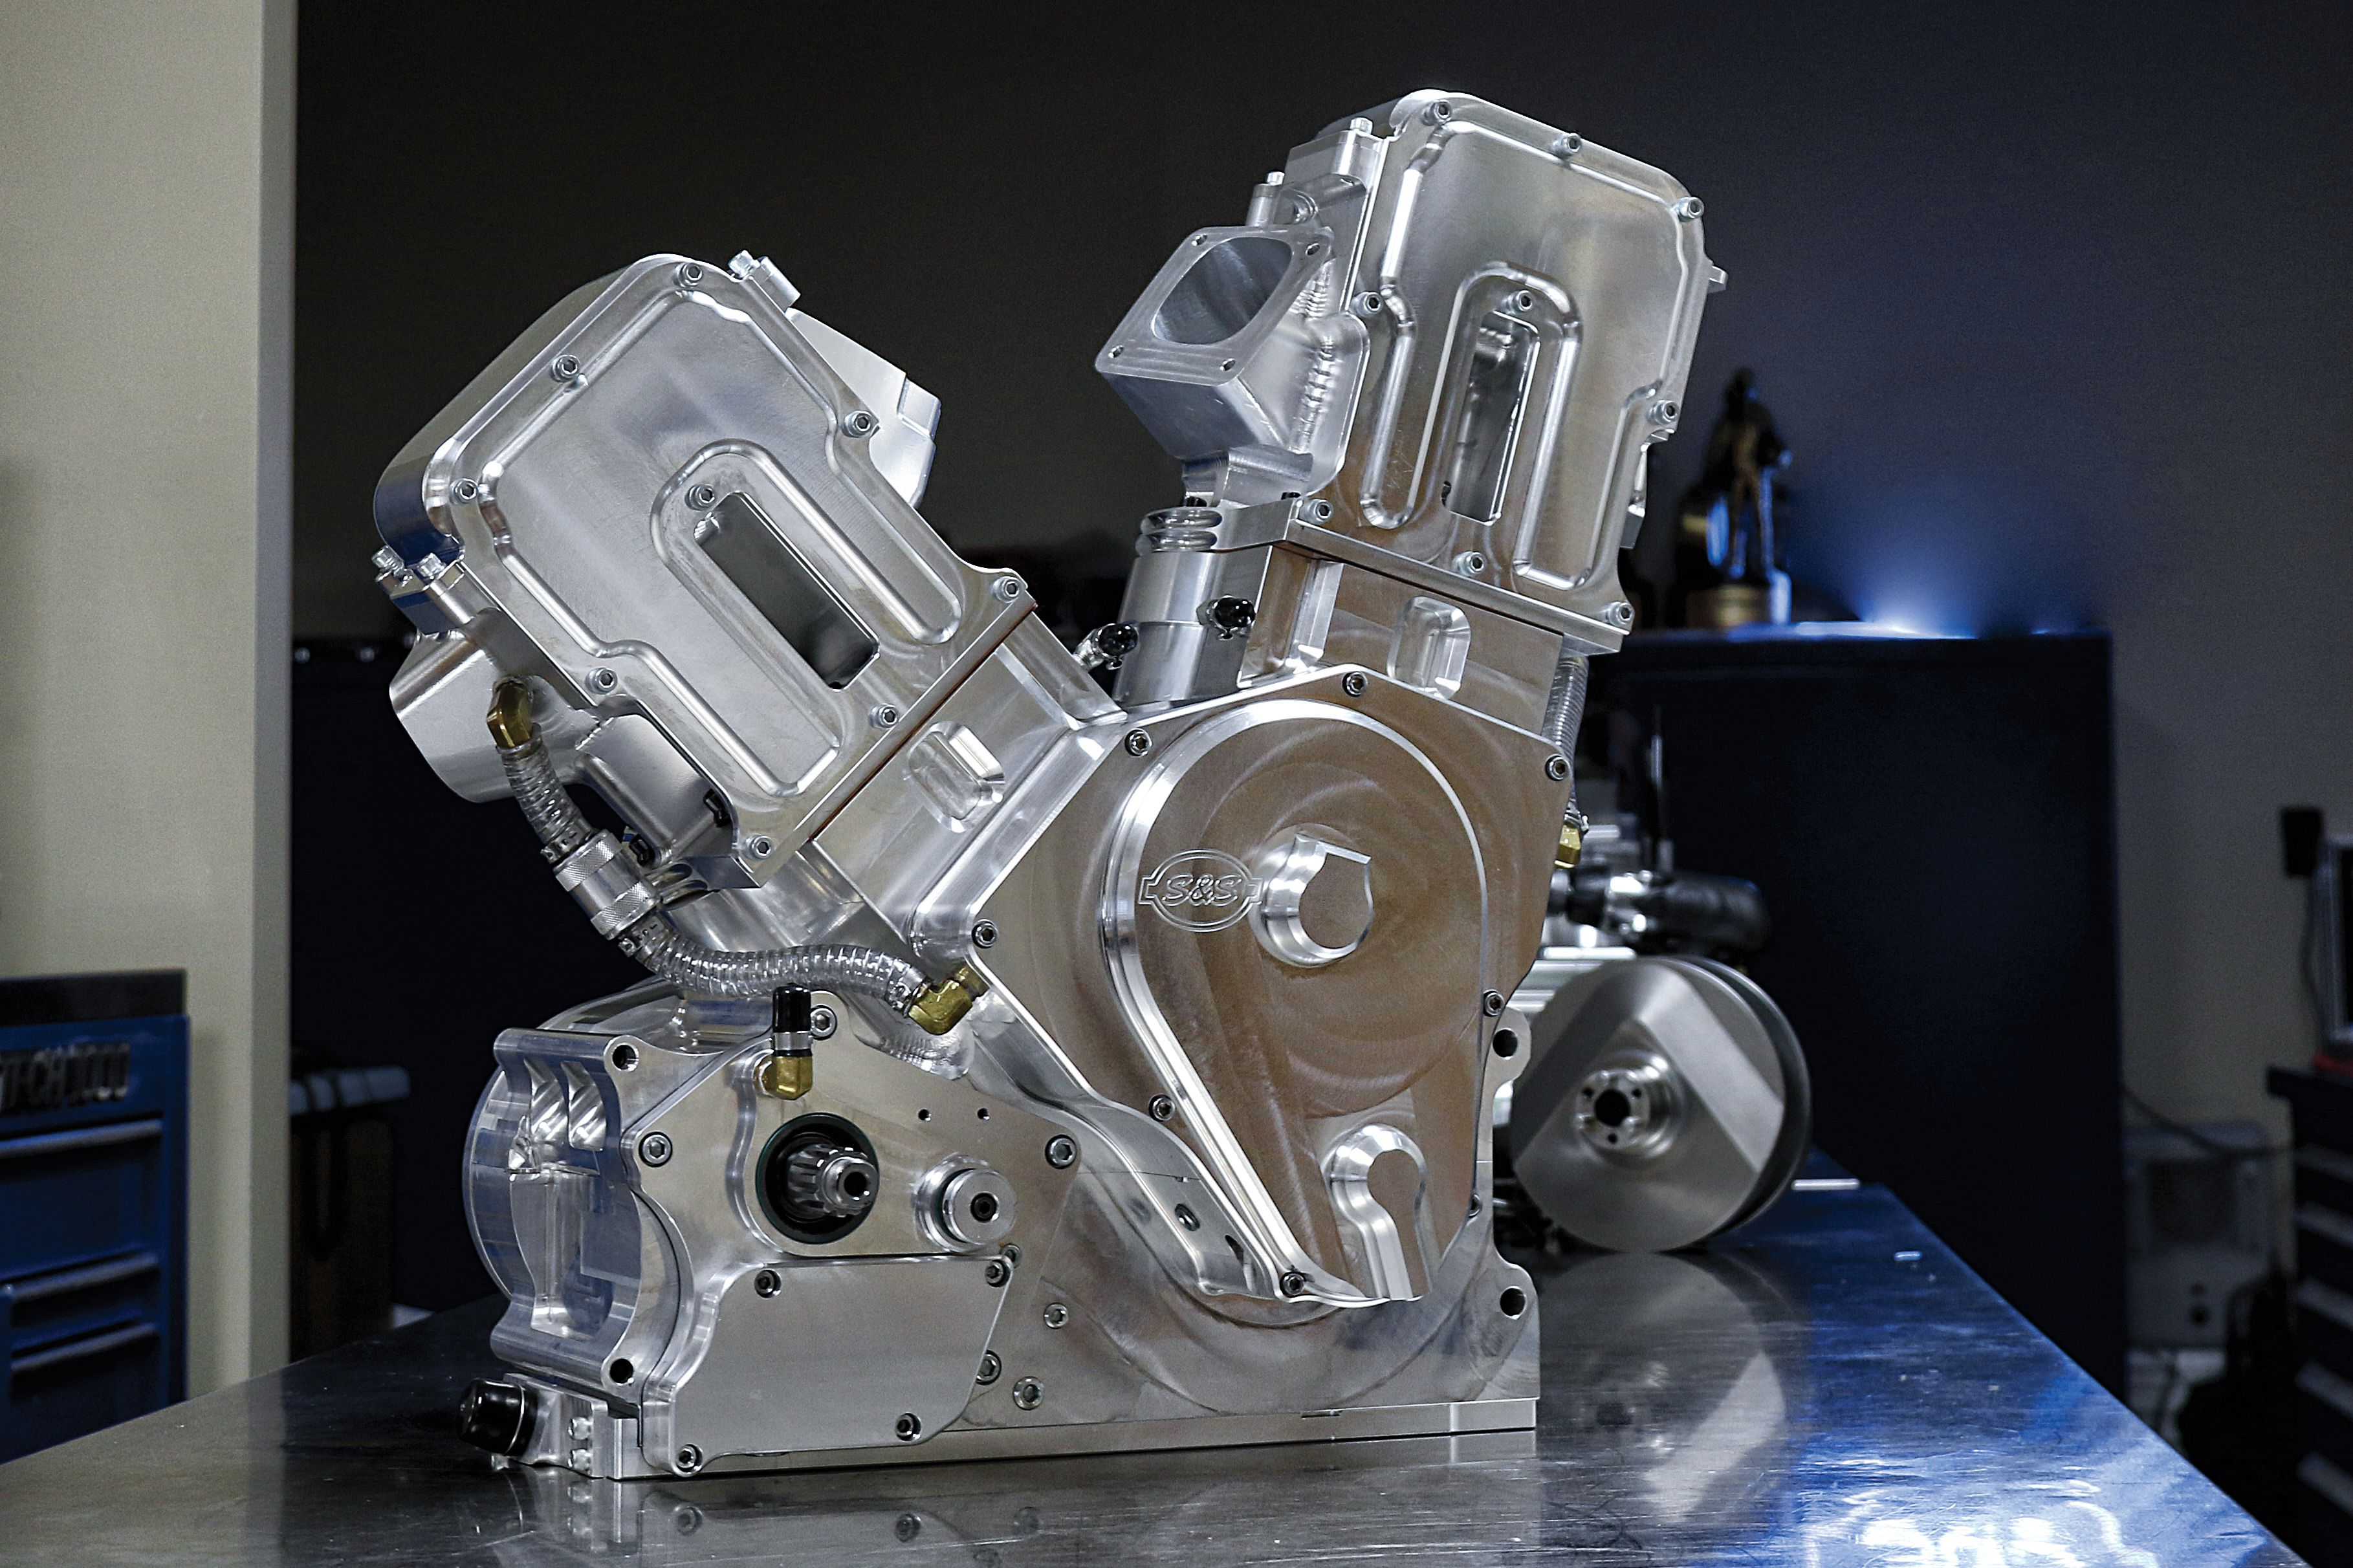 Inside the S&S Cycle Polaris Pro Stock Motorcycle Drag